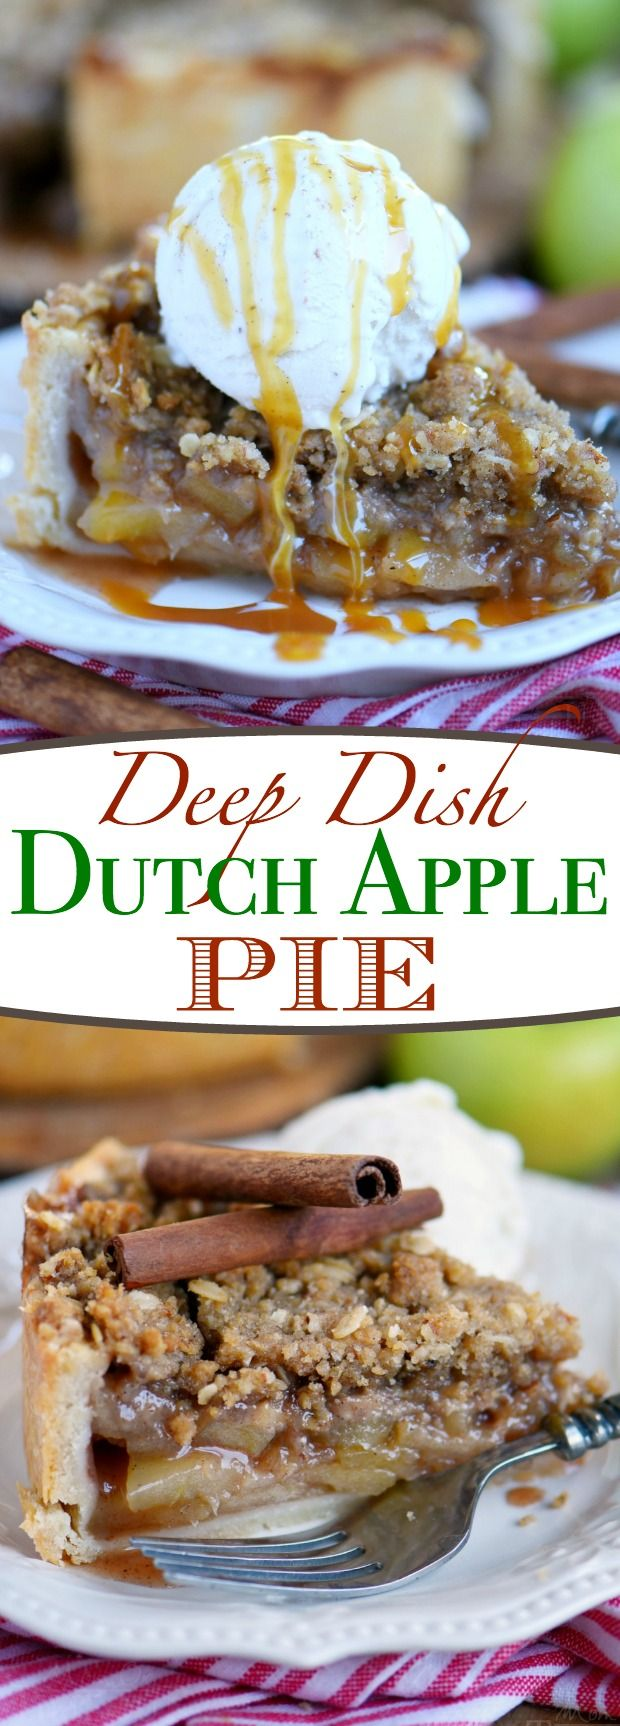 Deep Dish Dutch Apple Pie is loaded with a spiced apple filling and topped with a crunchy, sweet, pecan streusel topping. Best served with a big scoop of vanilla ice cream and caramel sauce. This is THE dessert for the fall season! | Mom On Timeout #applerecipes